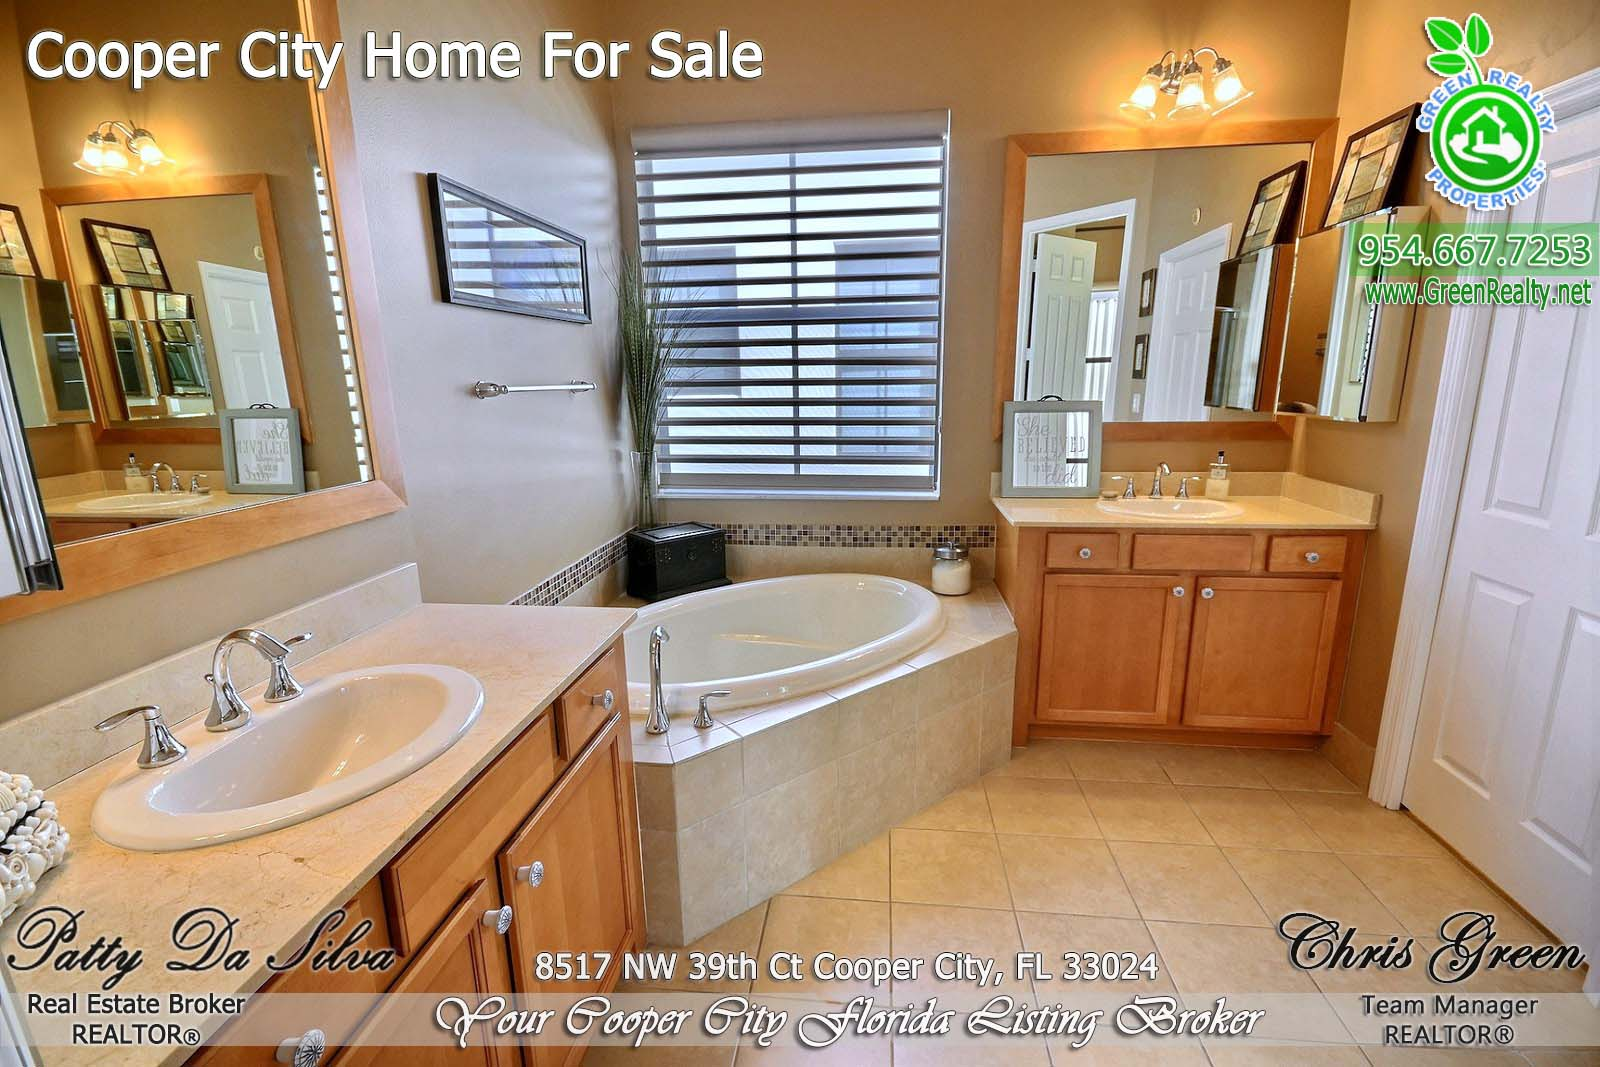 29 Patty Da Silva SELLS Monterra Homes (1)